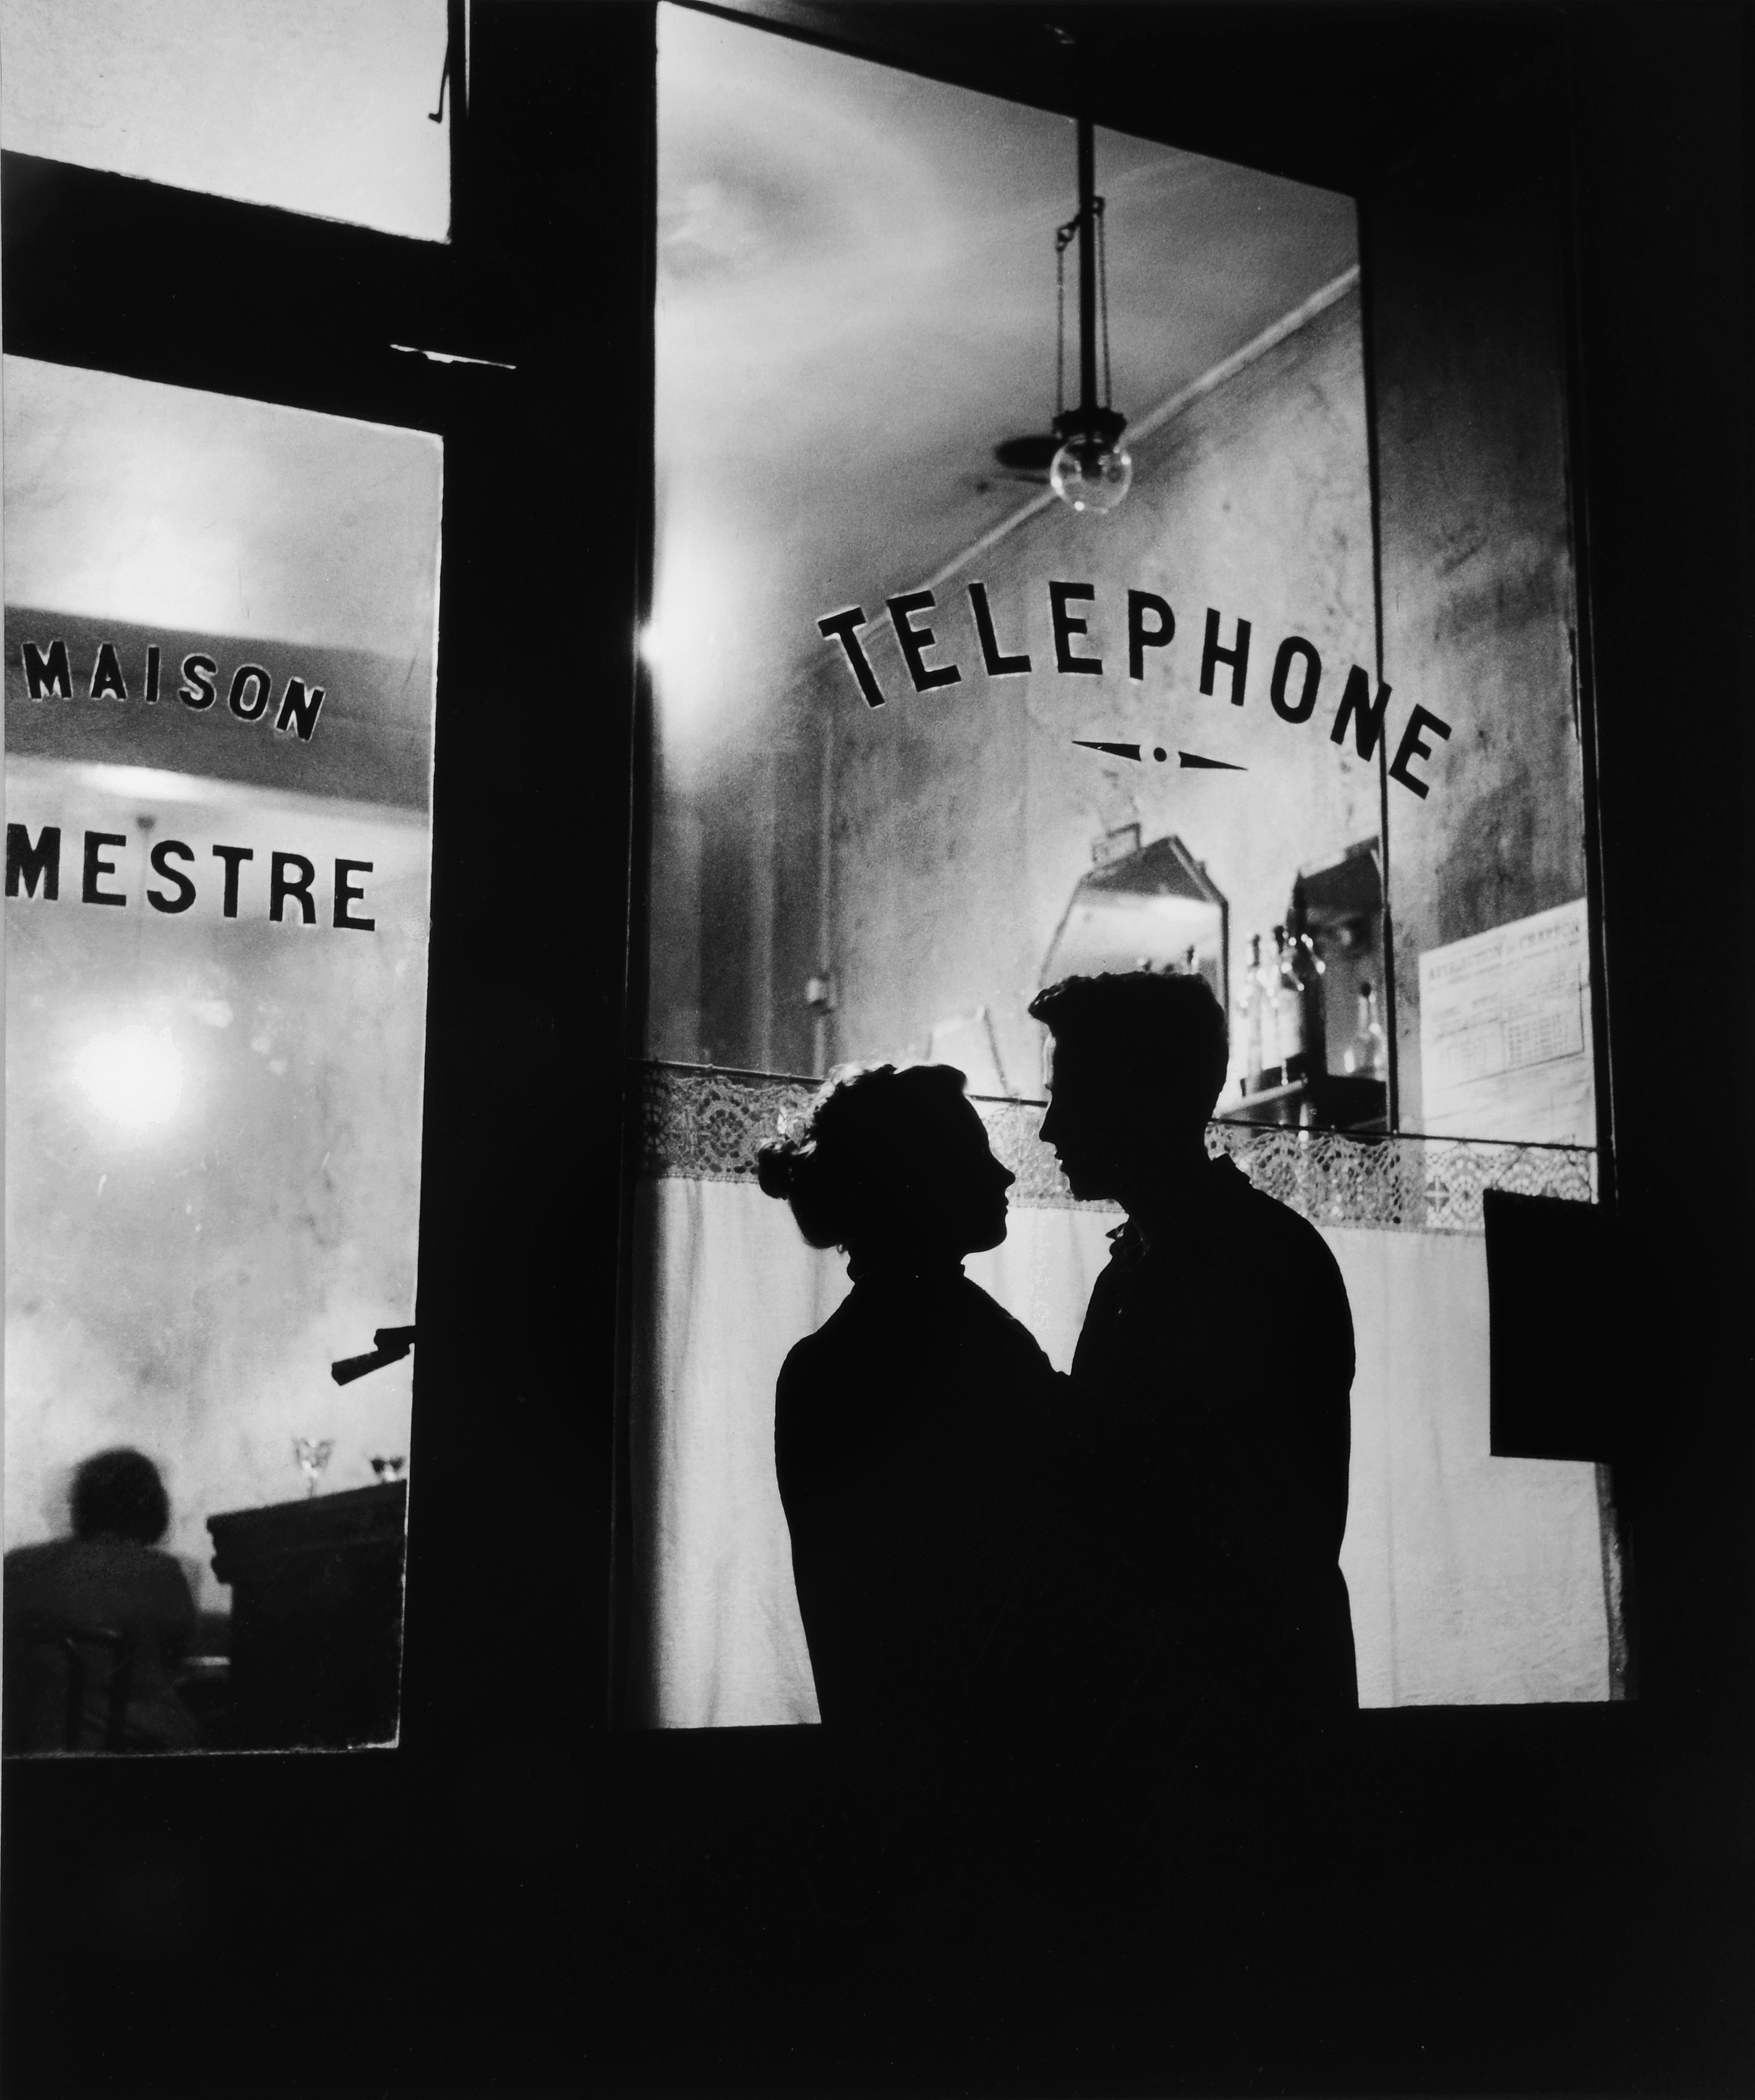 Willy Ronis - Menilmontaut (Devant Chez Mestre), Paris, France 1957 © Willy Ronis/ Beetles + Huxley